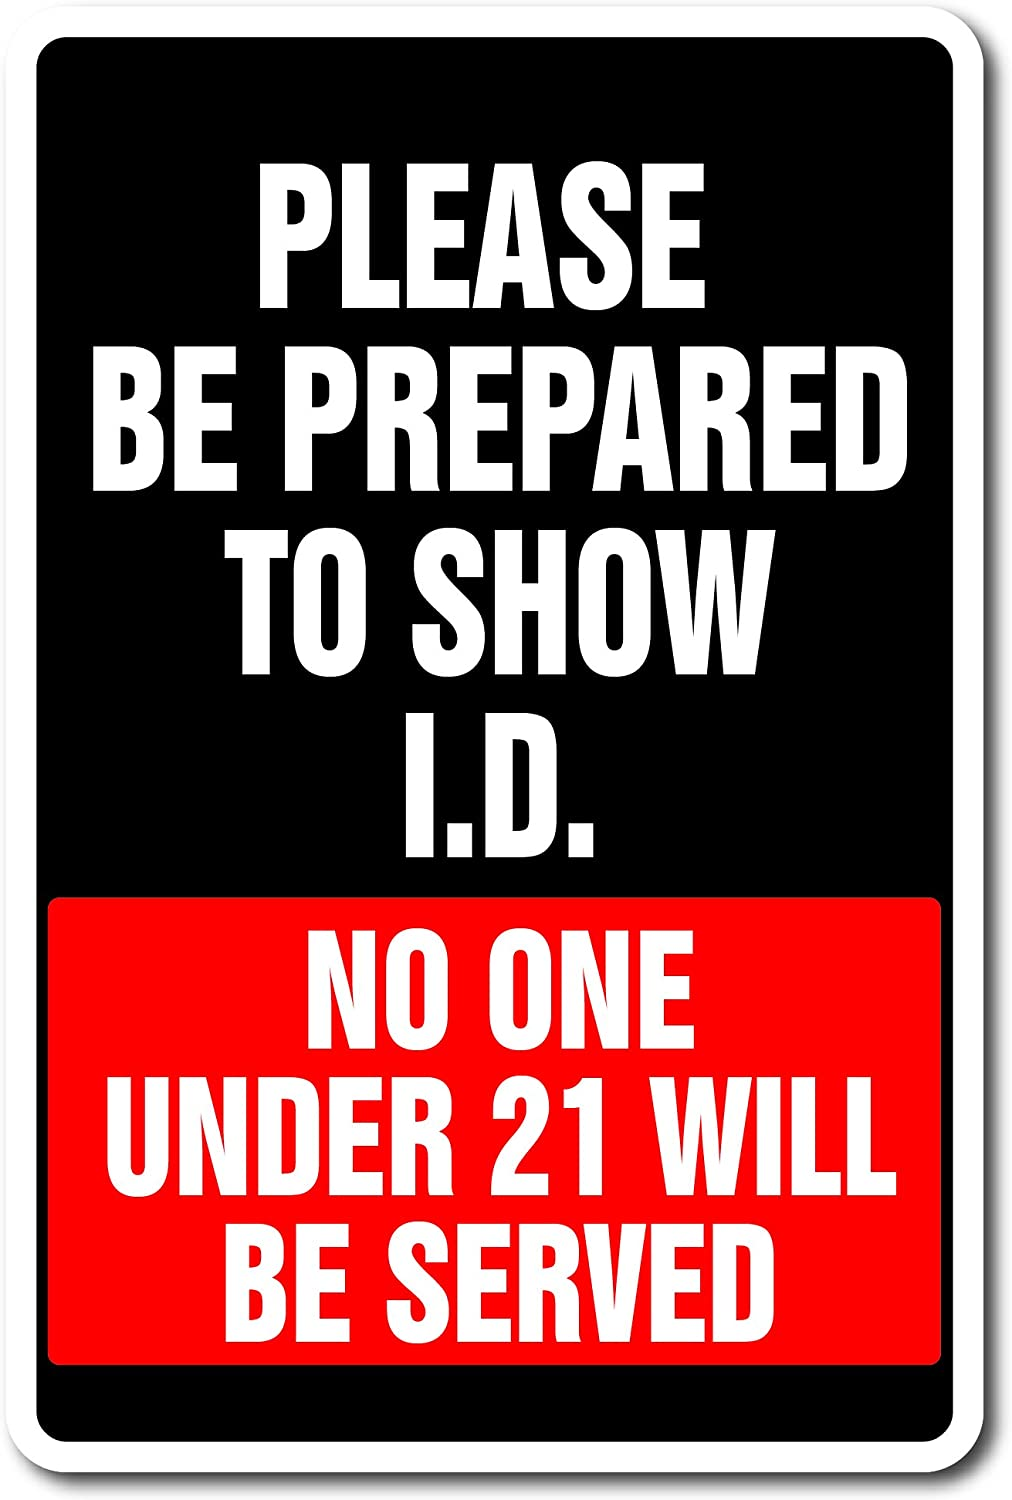 Be Prepared to Show I.D. No One Under 21 Served Sign | Indoor/Outdoor | Funny Home Décor for Garages, Living Rooms, Bedroom, Offices | Signmission Bar Alcohol Liquor Store Sign Wall Plaque Decoration